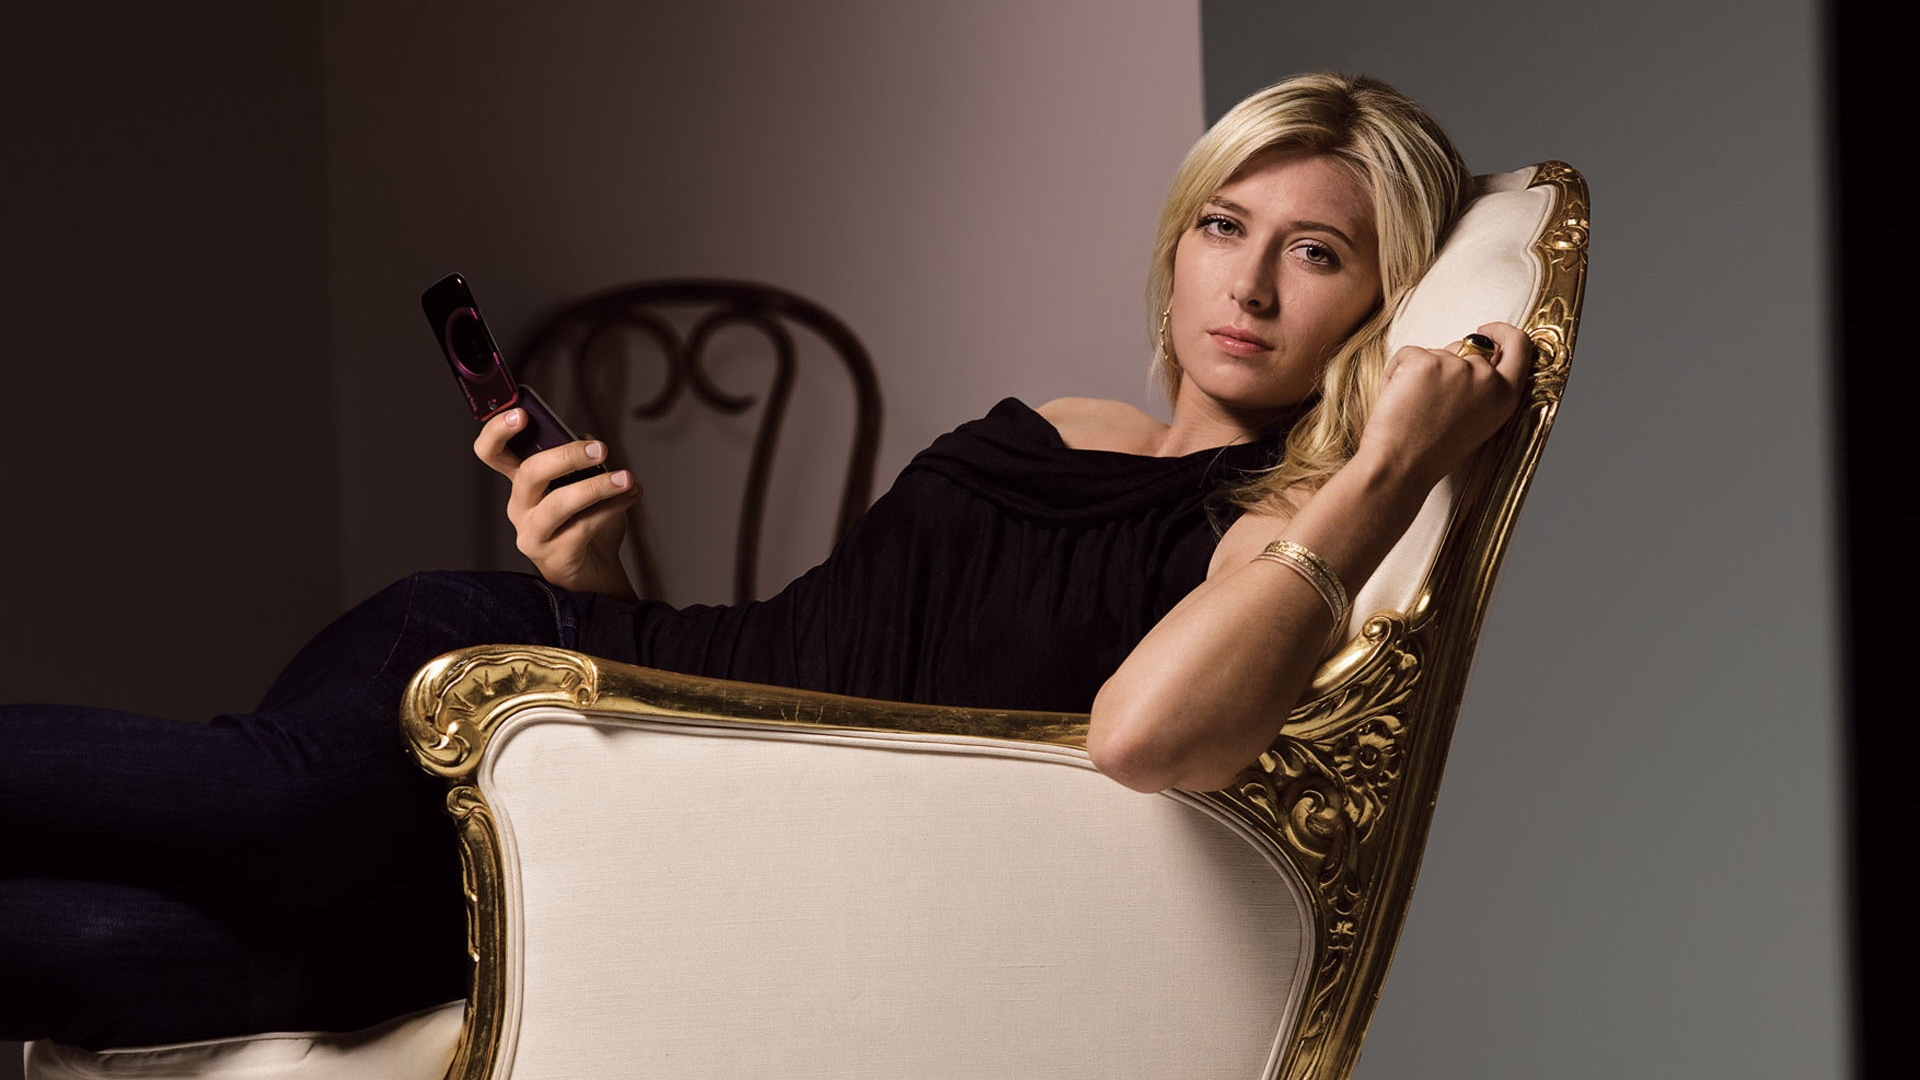 Maria Sharapova Gorgeous HD Wallpapers Hot Wallpapers